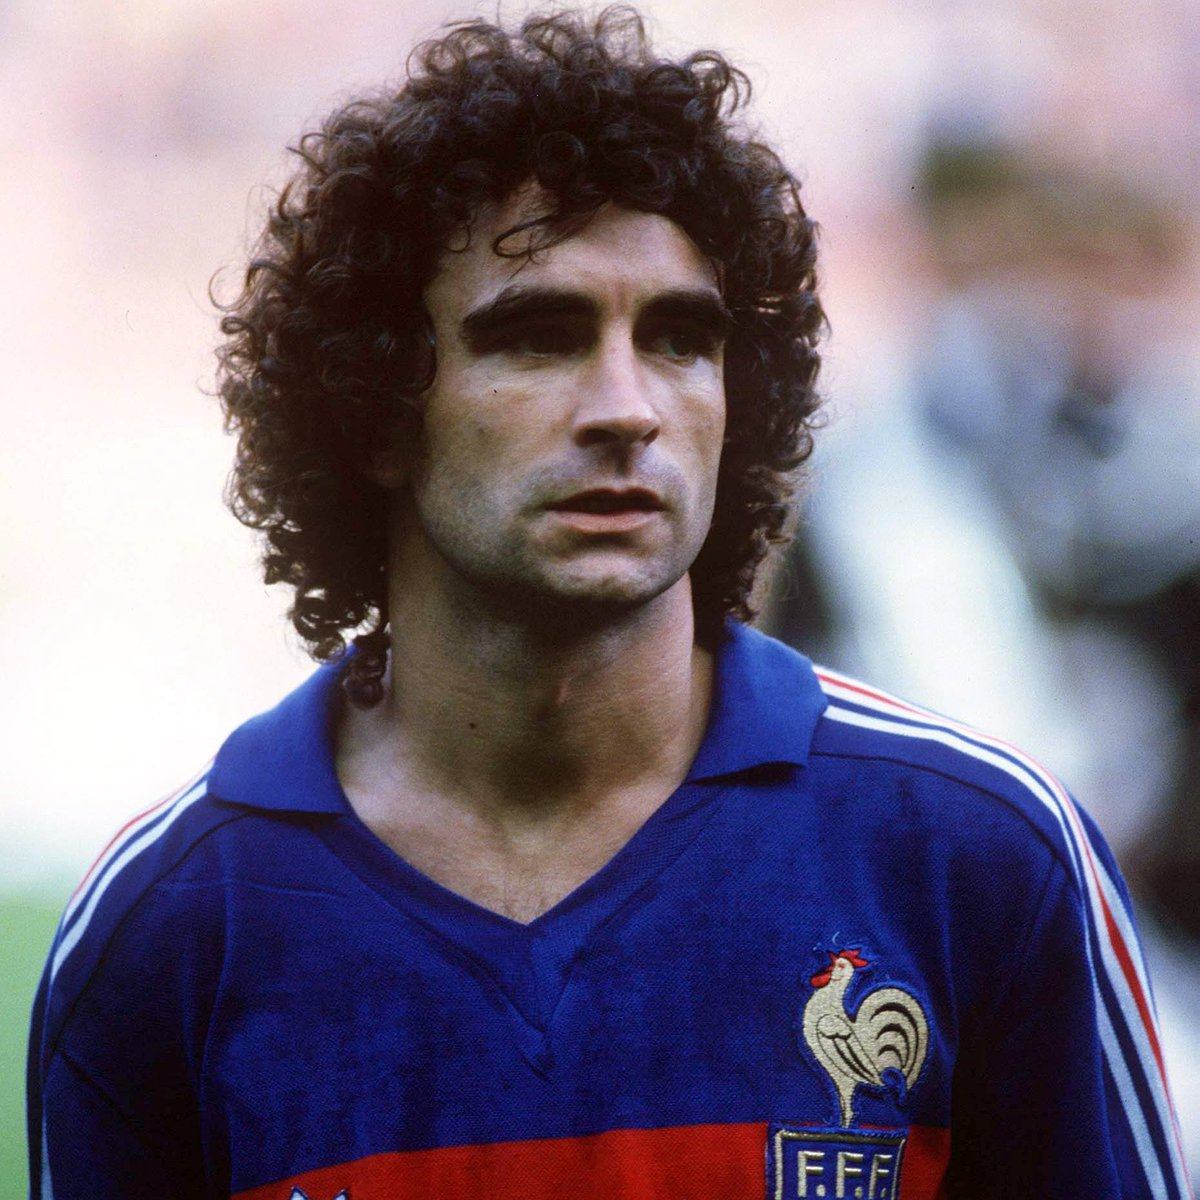 🌟 Dominique Rocheteau inspired Saint-Etienne to 3 straight French top-flight titles and PSG to their 1st, scored in 3 #WorldCup tournaments and helped France win the UEFA EURO. Happy 66th birthday to 'The Green Angel' 💚😇  @ASSE_english | @PSG_English | @FrenchTeam